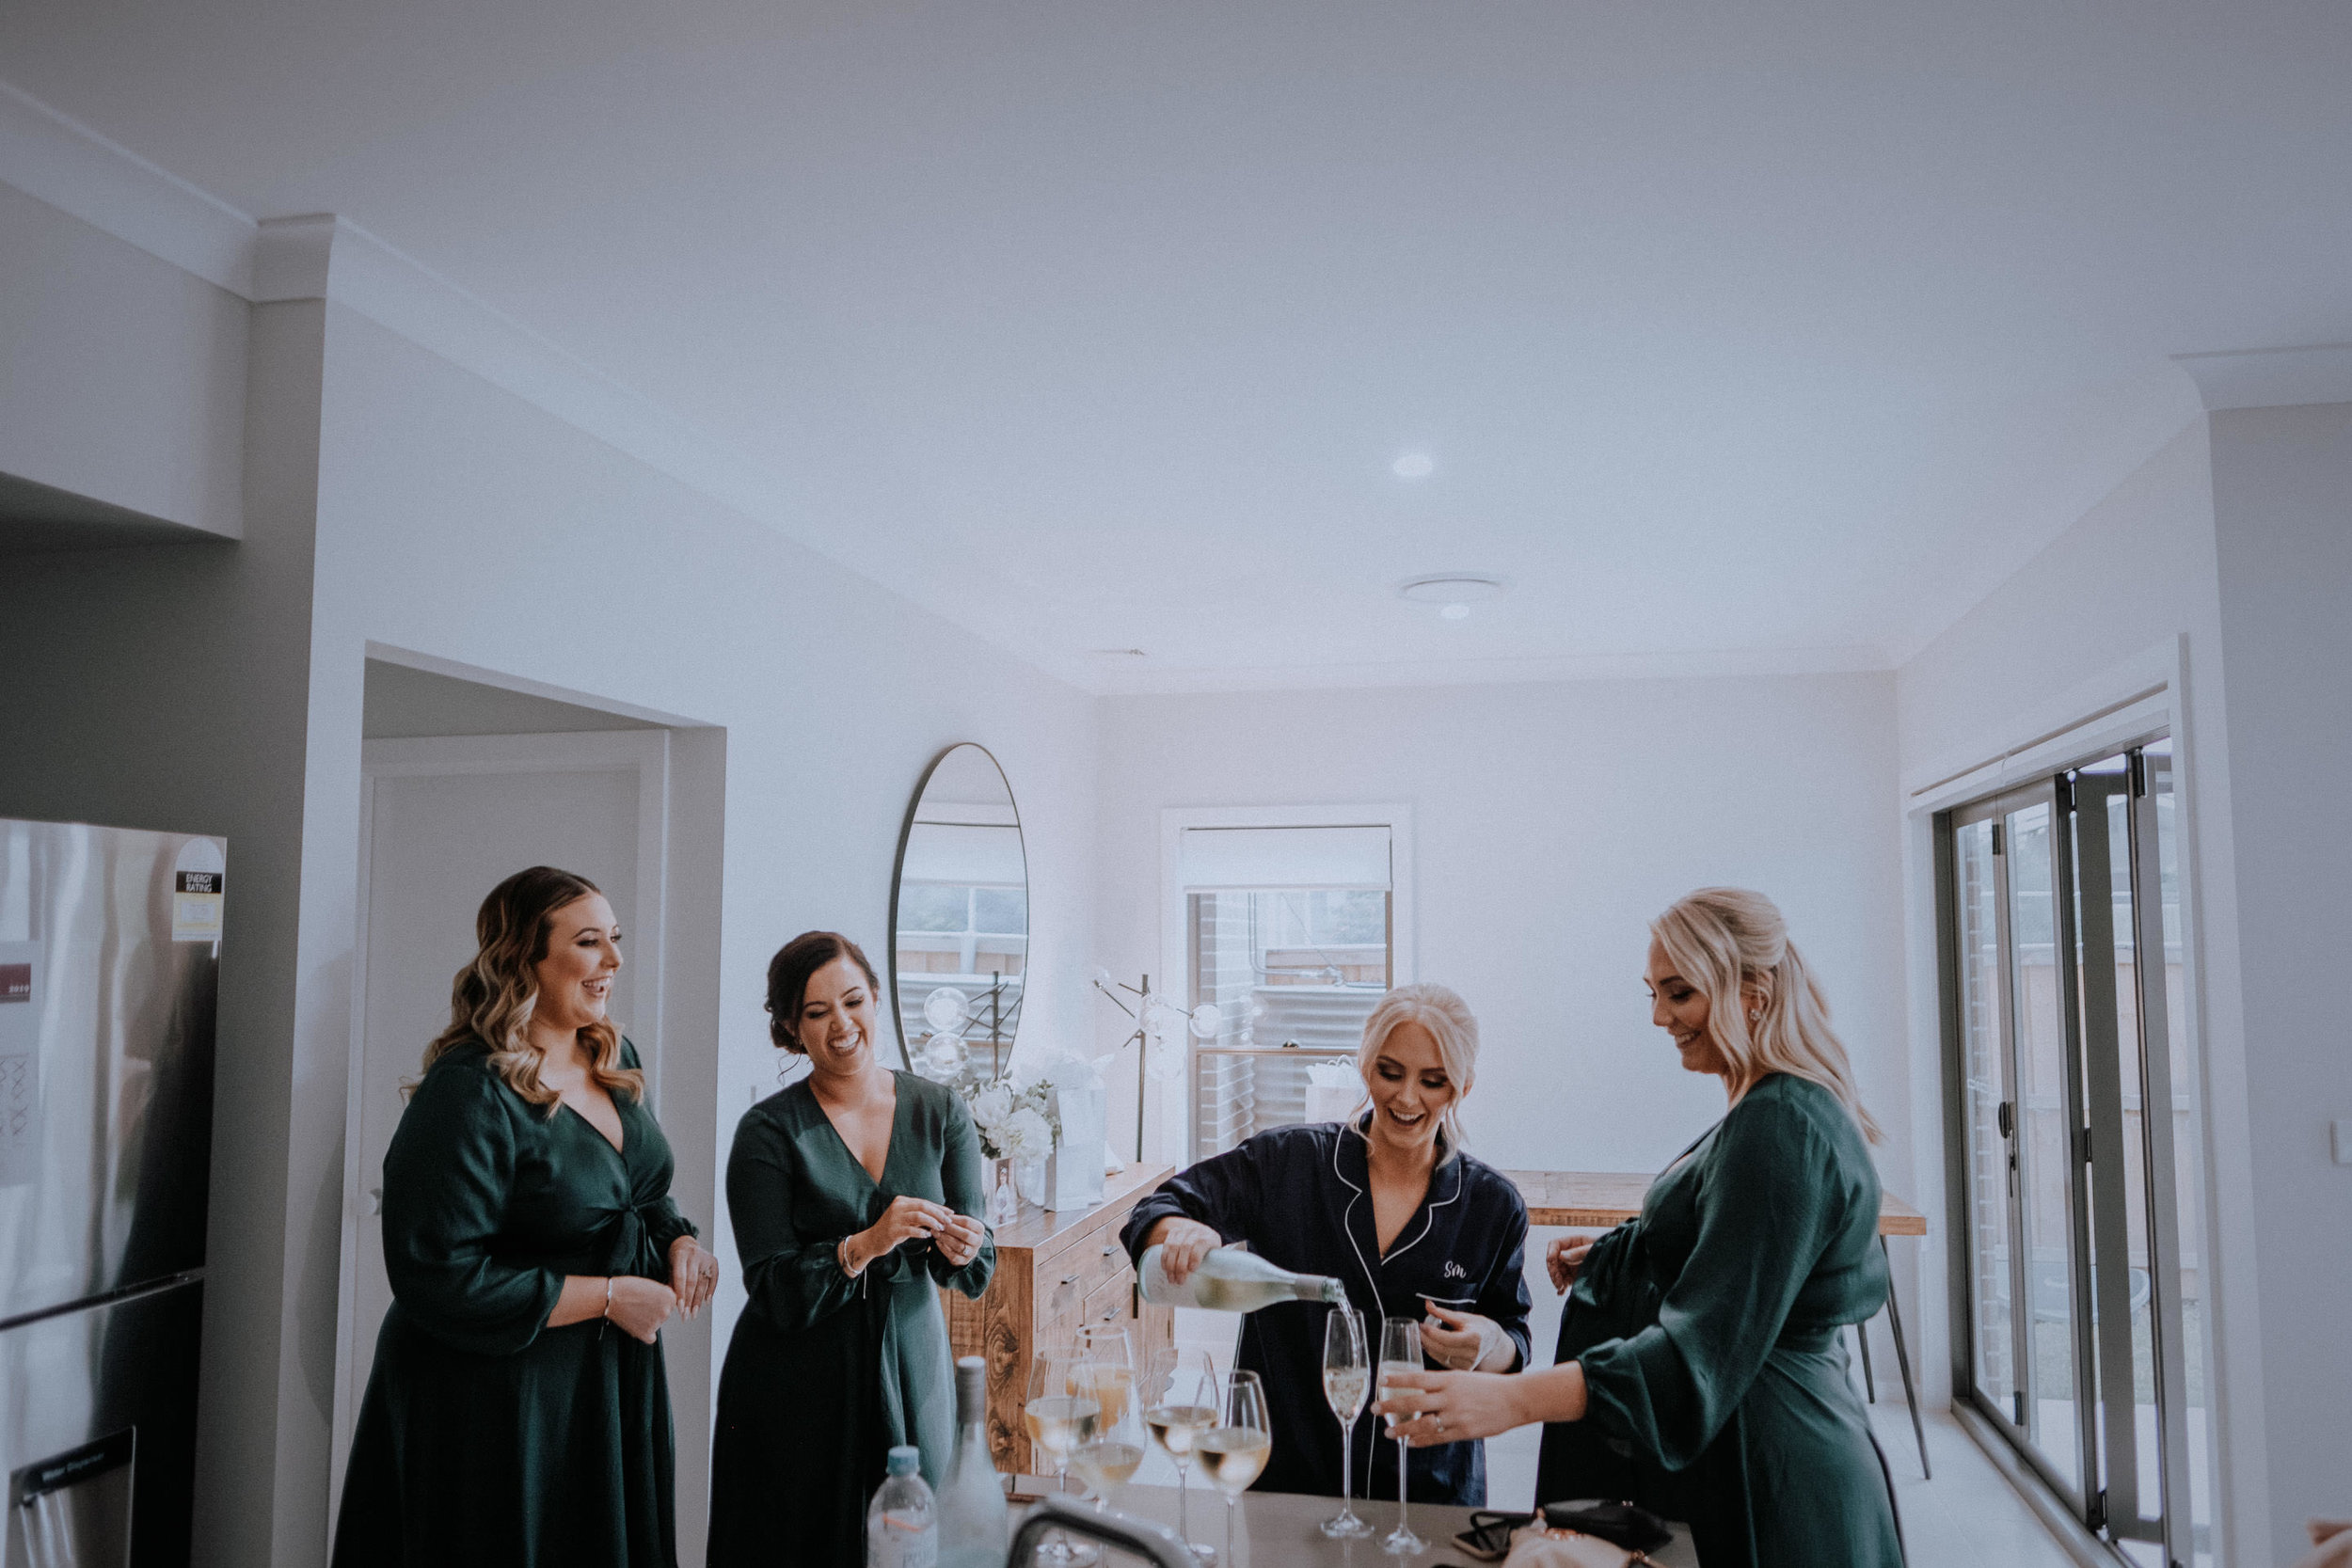 A bride and bridesmaids celebrating with champagne before the wedding